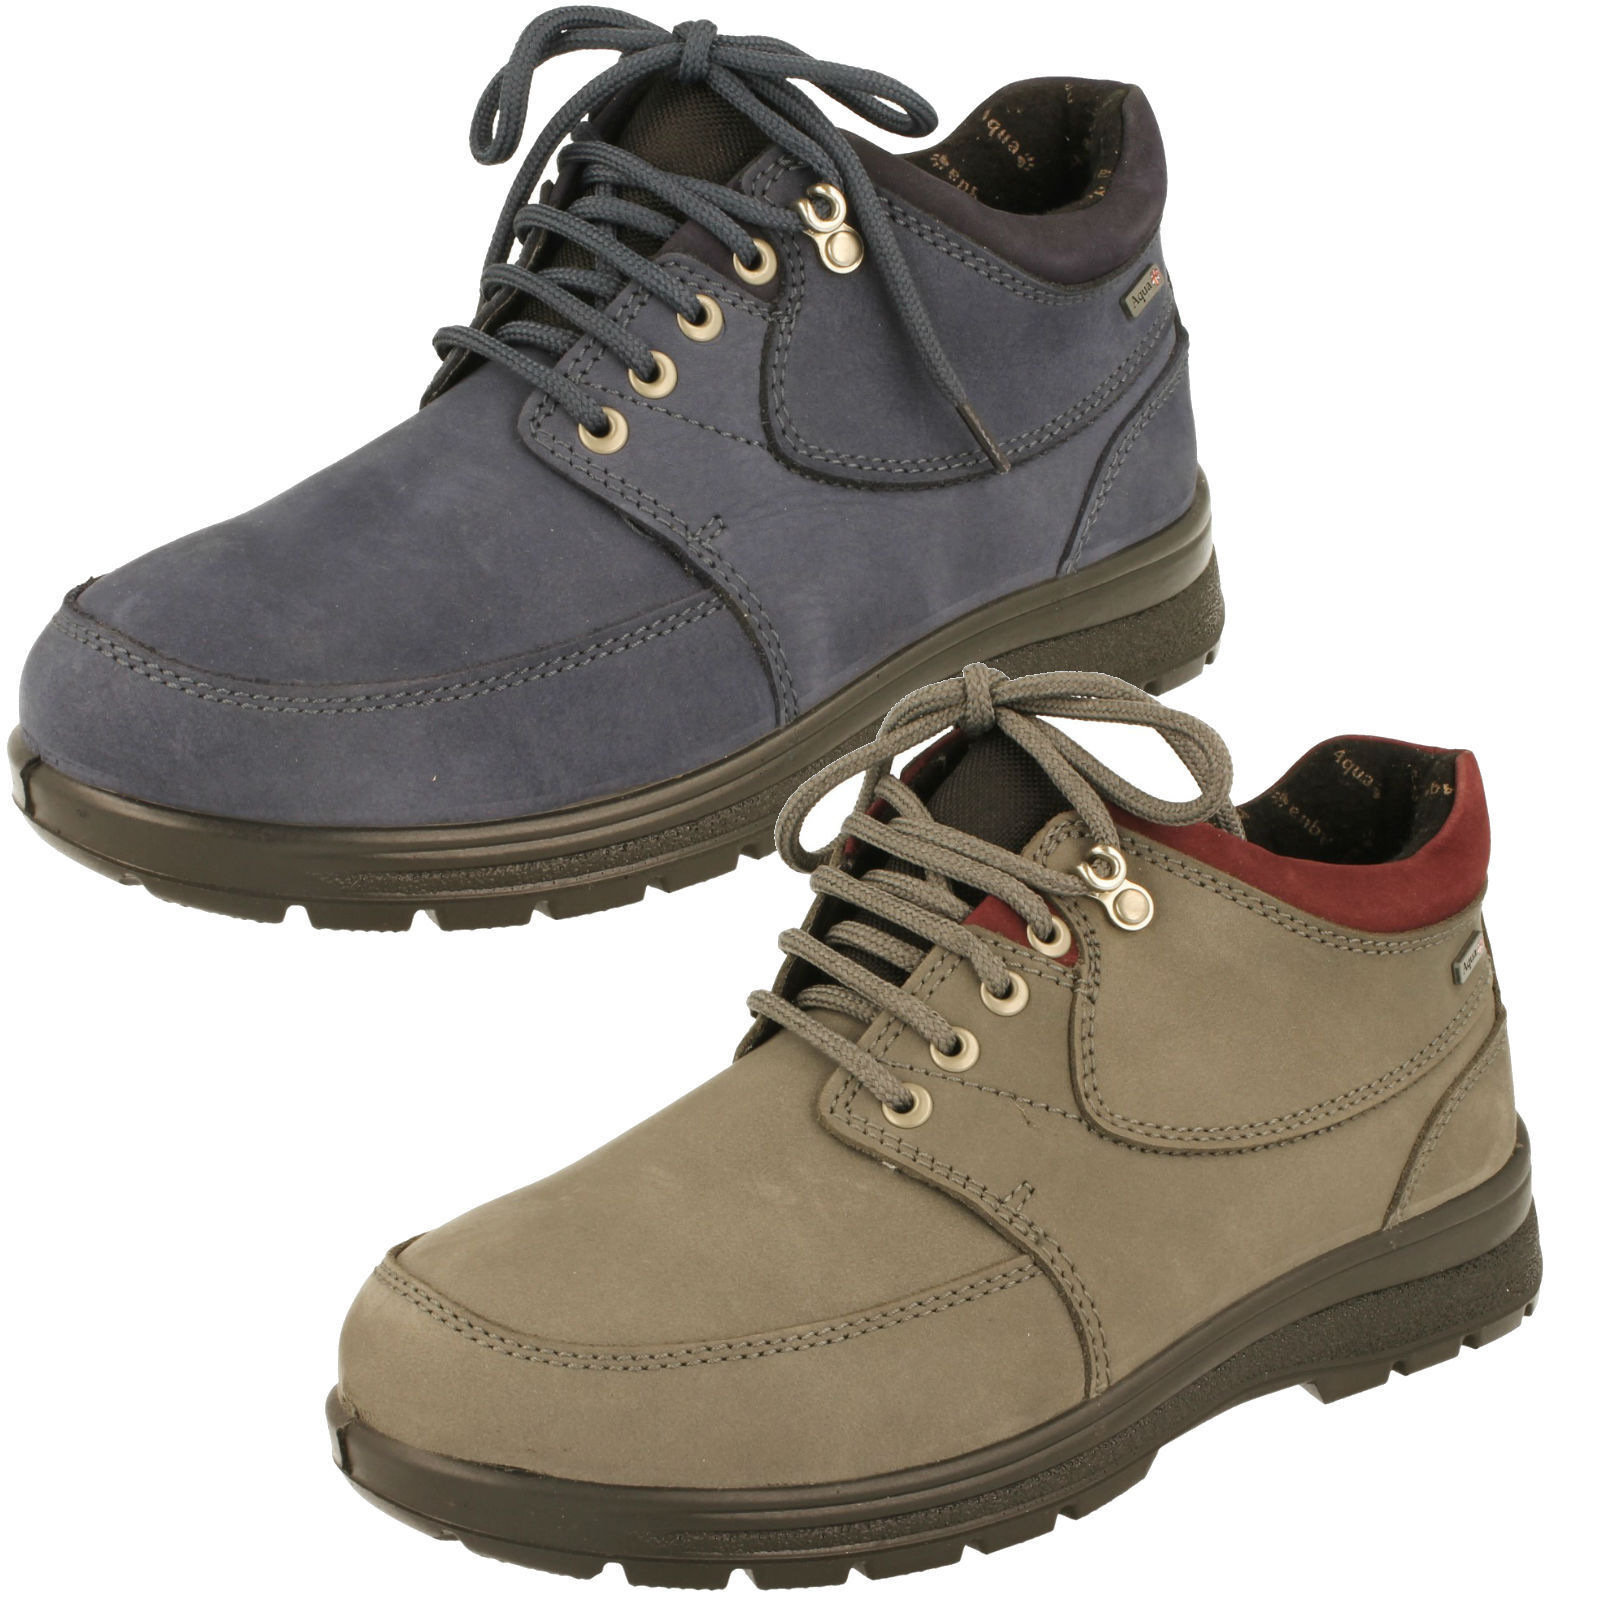 Grandes zapatos con descuento mujer Padders Doble Ajuste Botas Impermeables - Summit